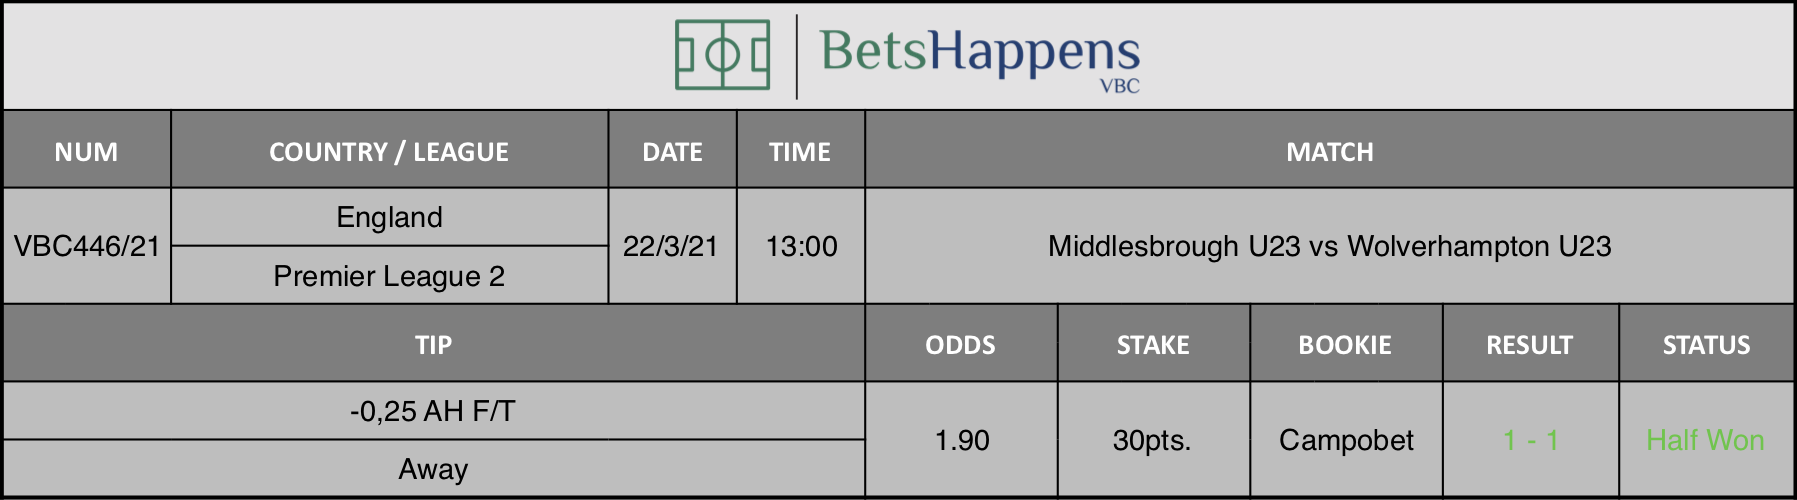 Results of our tip for the Middlesbrough U23 vs Wolverhampton U23 match where -0,25 AH F/T Away is recommended.